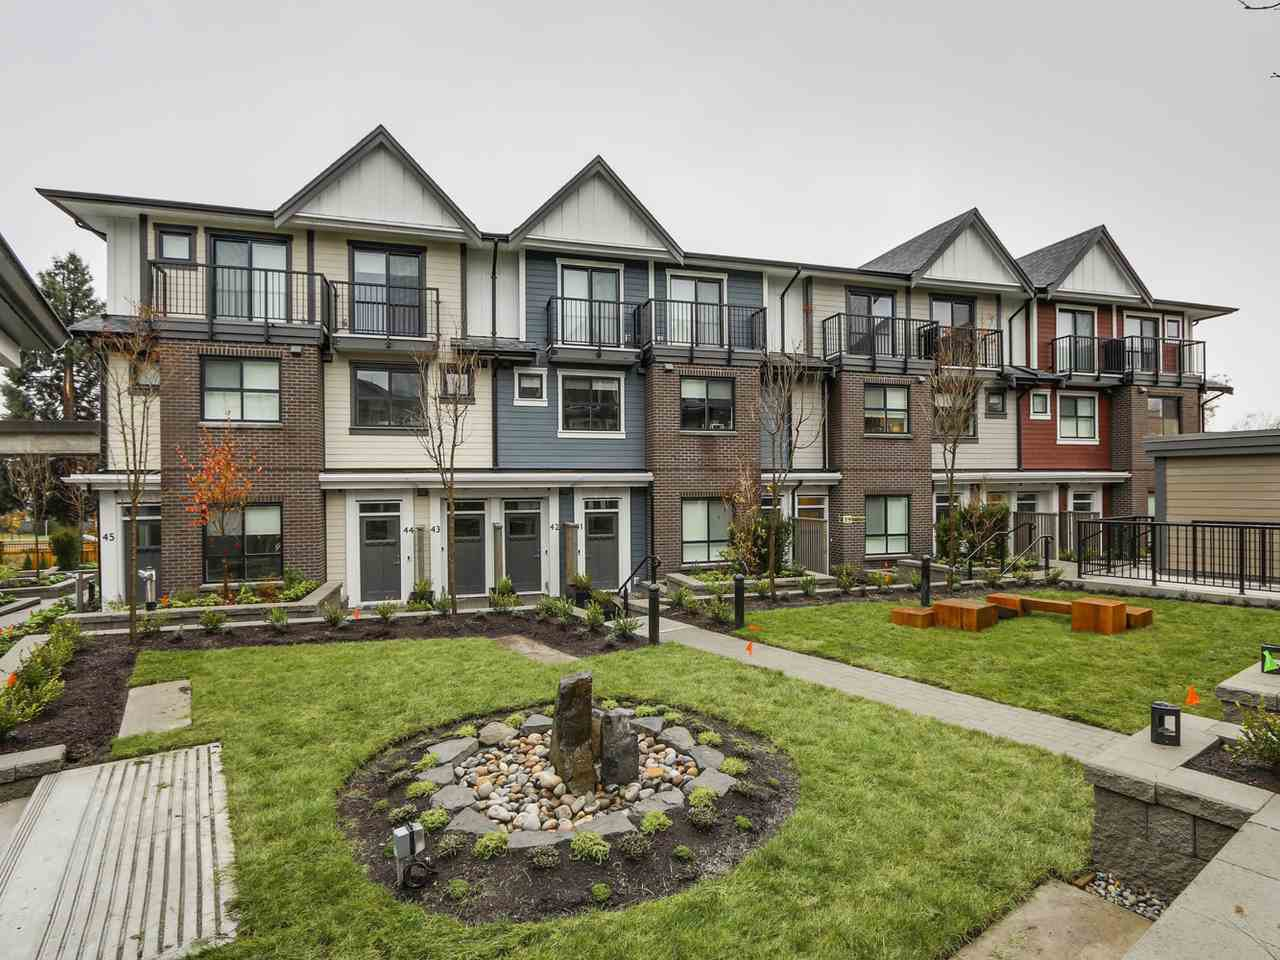 Main Photo: TH37 7039 MACPHERSON AVENUE in Burnaby: Metrotown Townhouse for sale (Burnaby South)  : MLS®# R2127174